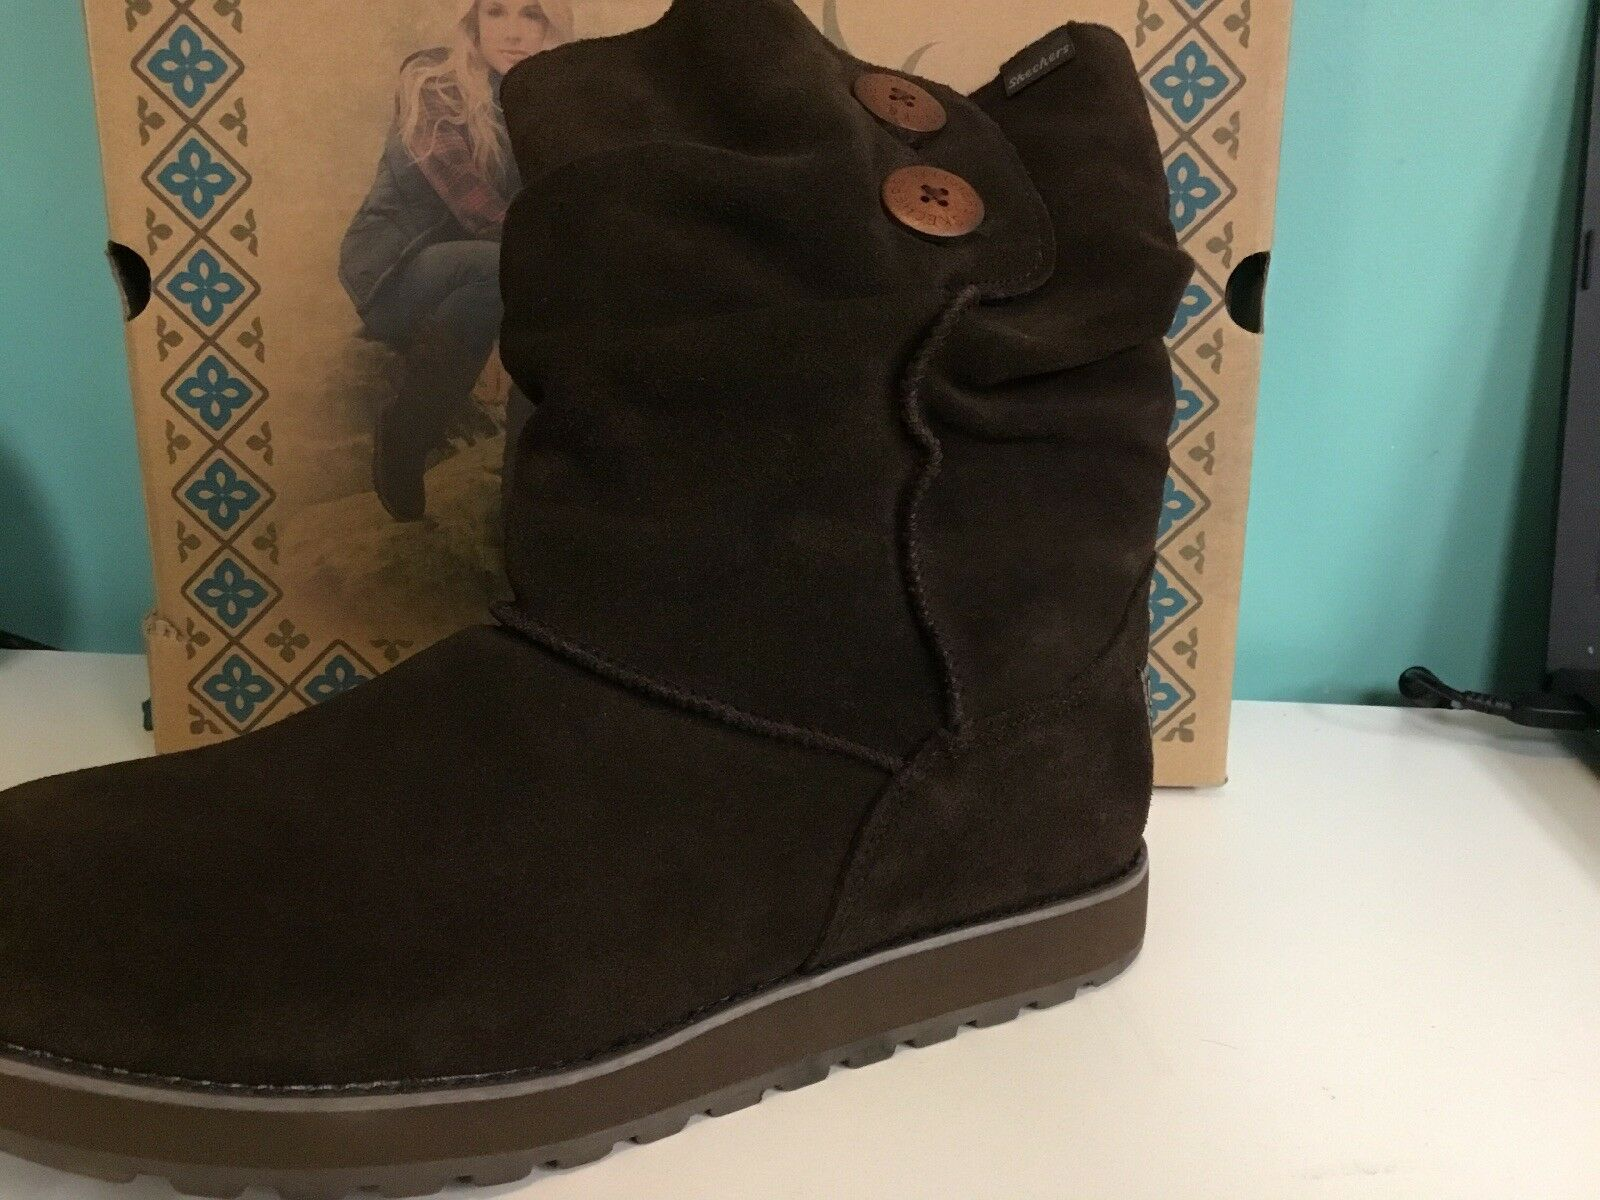 New Skechers Women's Keepsakes Freezing Temps Choc Size 9.5